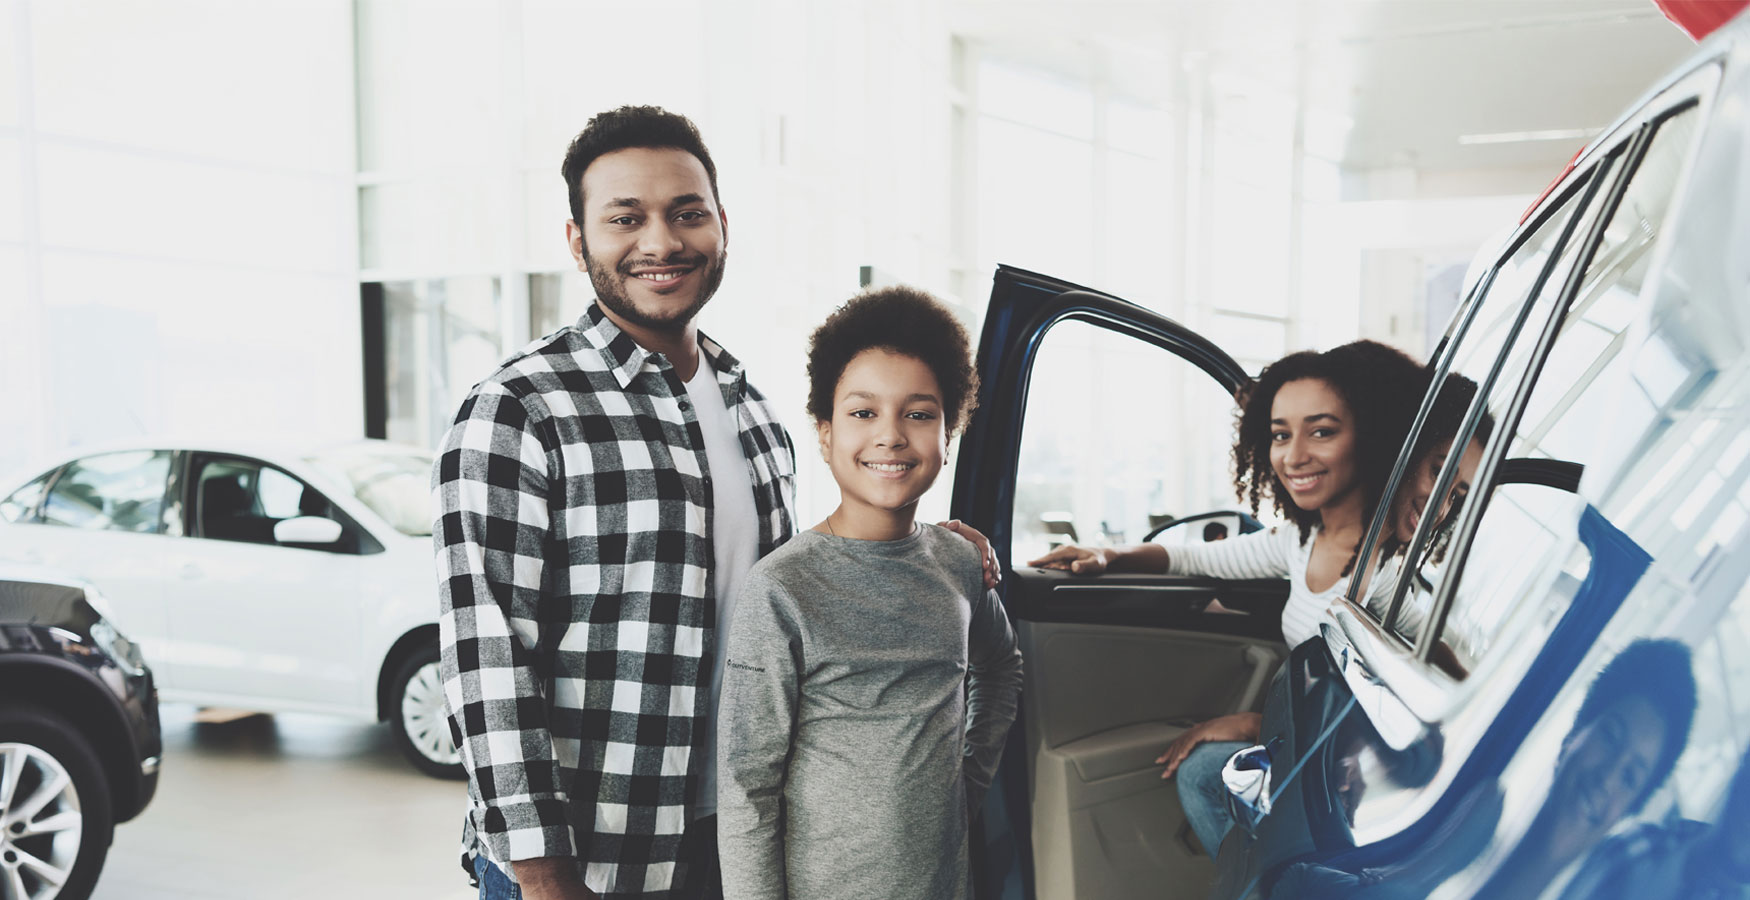 Family standing next to their new car in dealership.